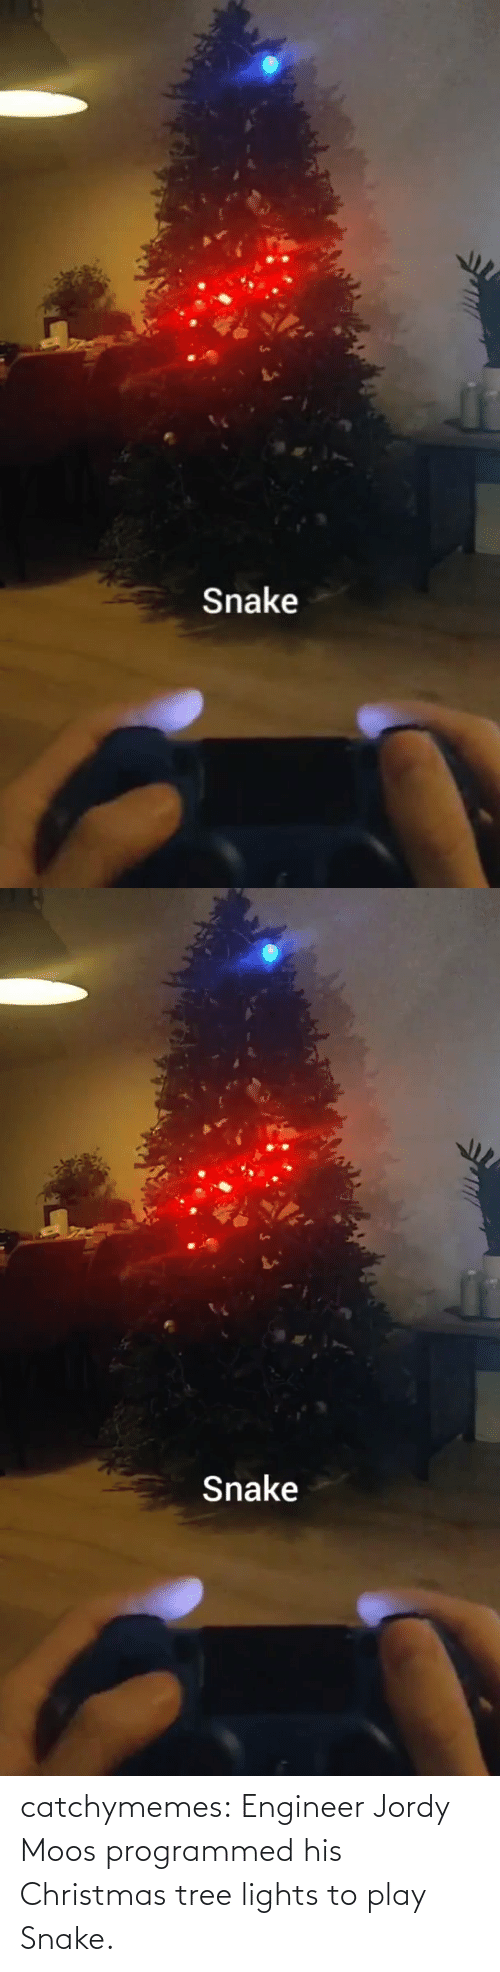 engineer: Snake   Snake catchymemes:  Engineer Jordy Moos programmed his Christmas tree lights to play Snake.